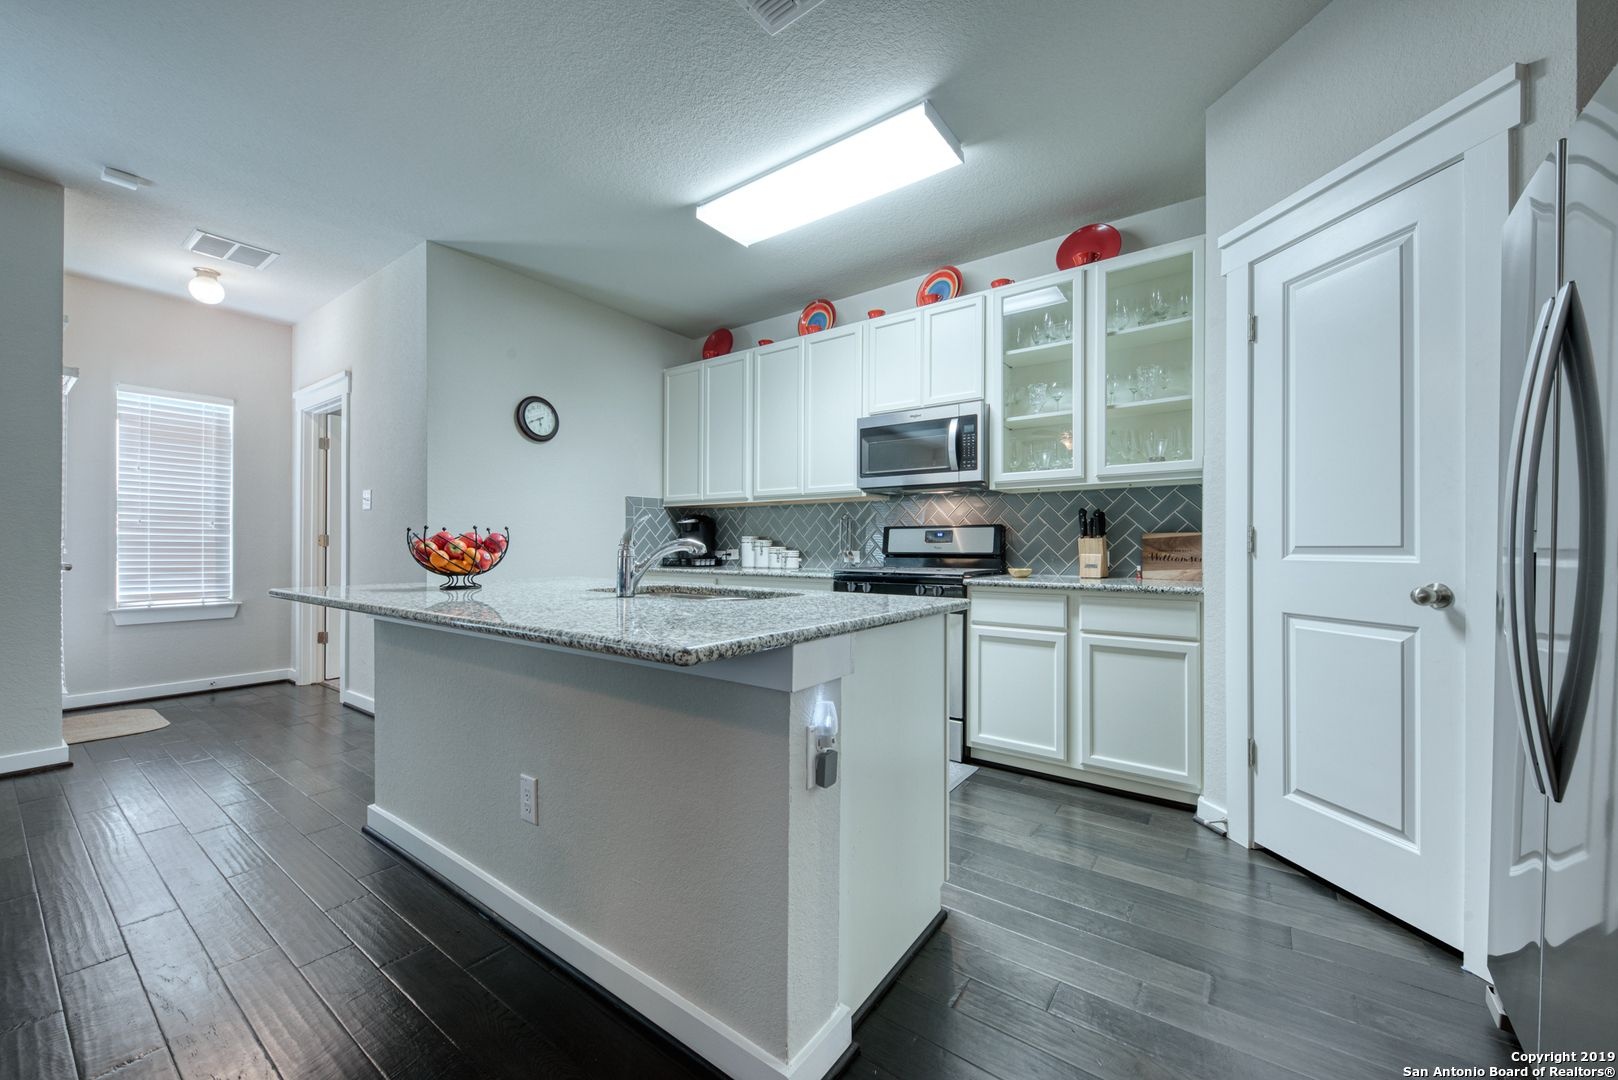 RENTTOOWN THIS HOME!🚩 💰 2,380/Month 🛌 5Bedrooms 🛀 3